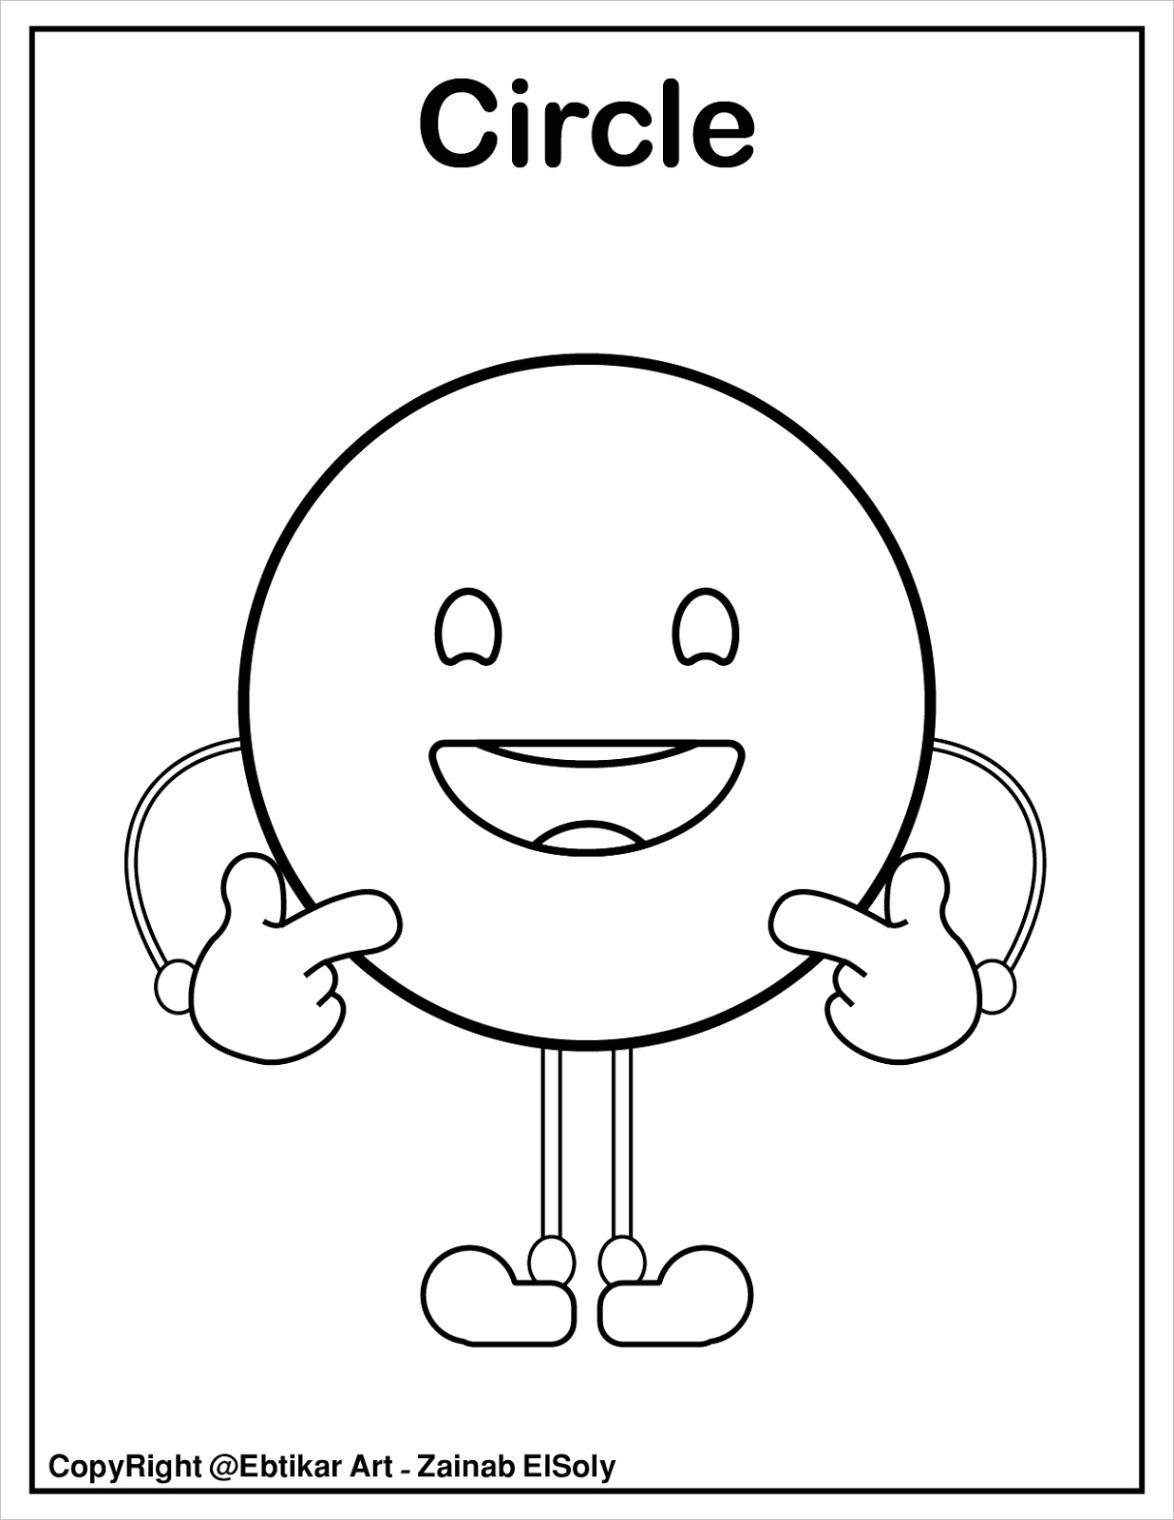 set of emoji shapes coloring pagesml